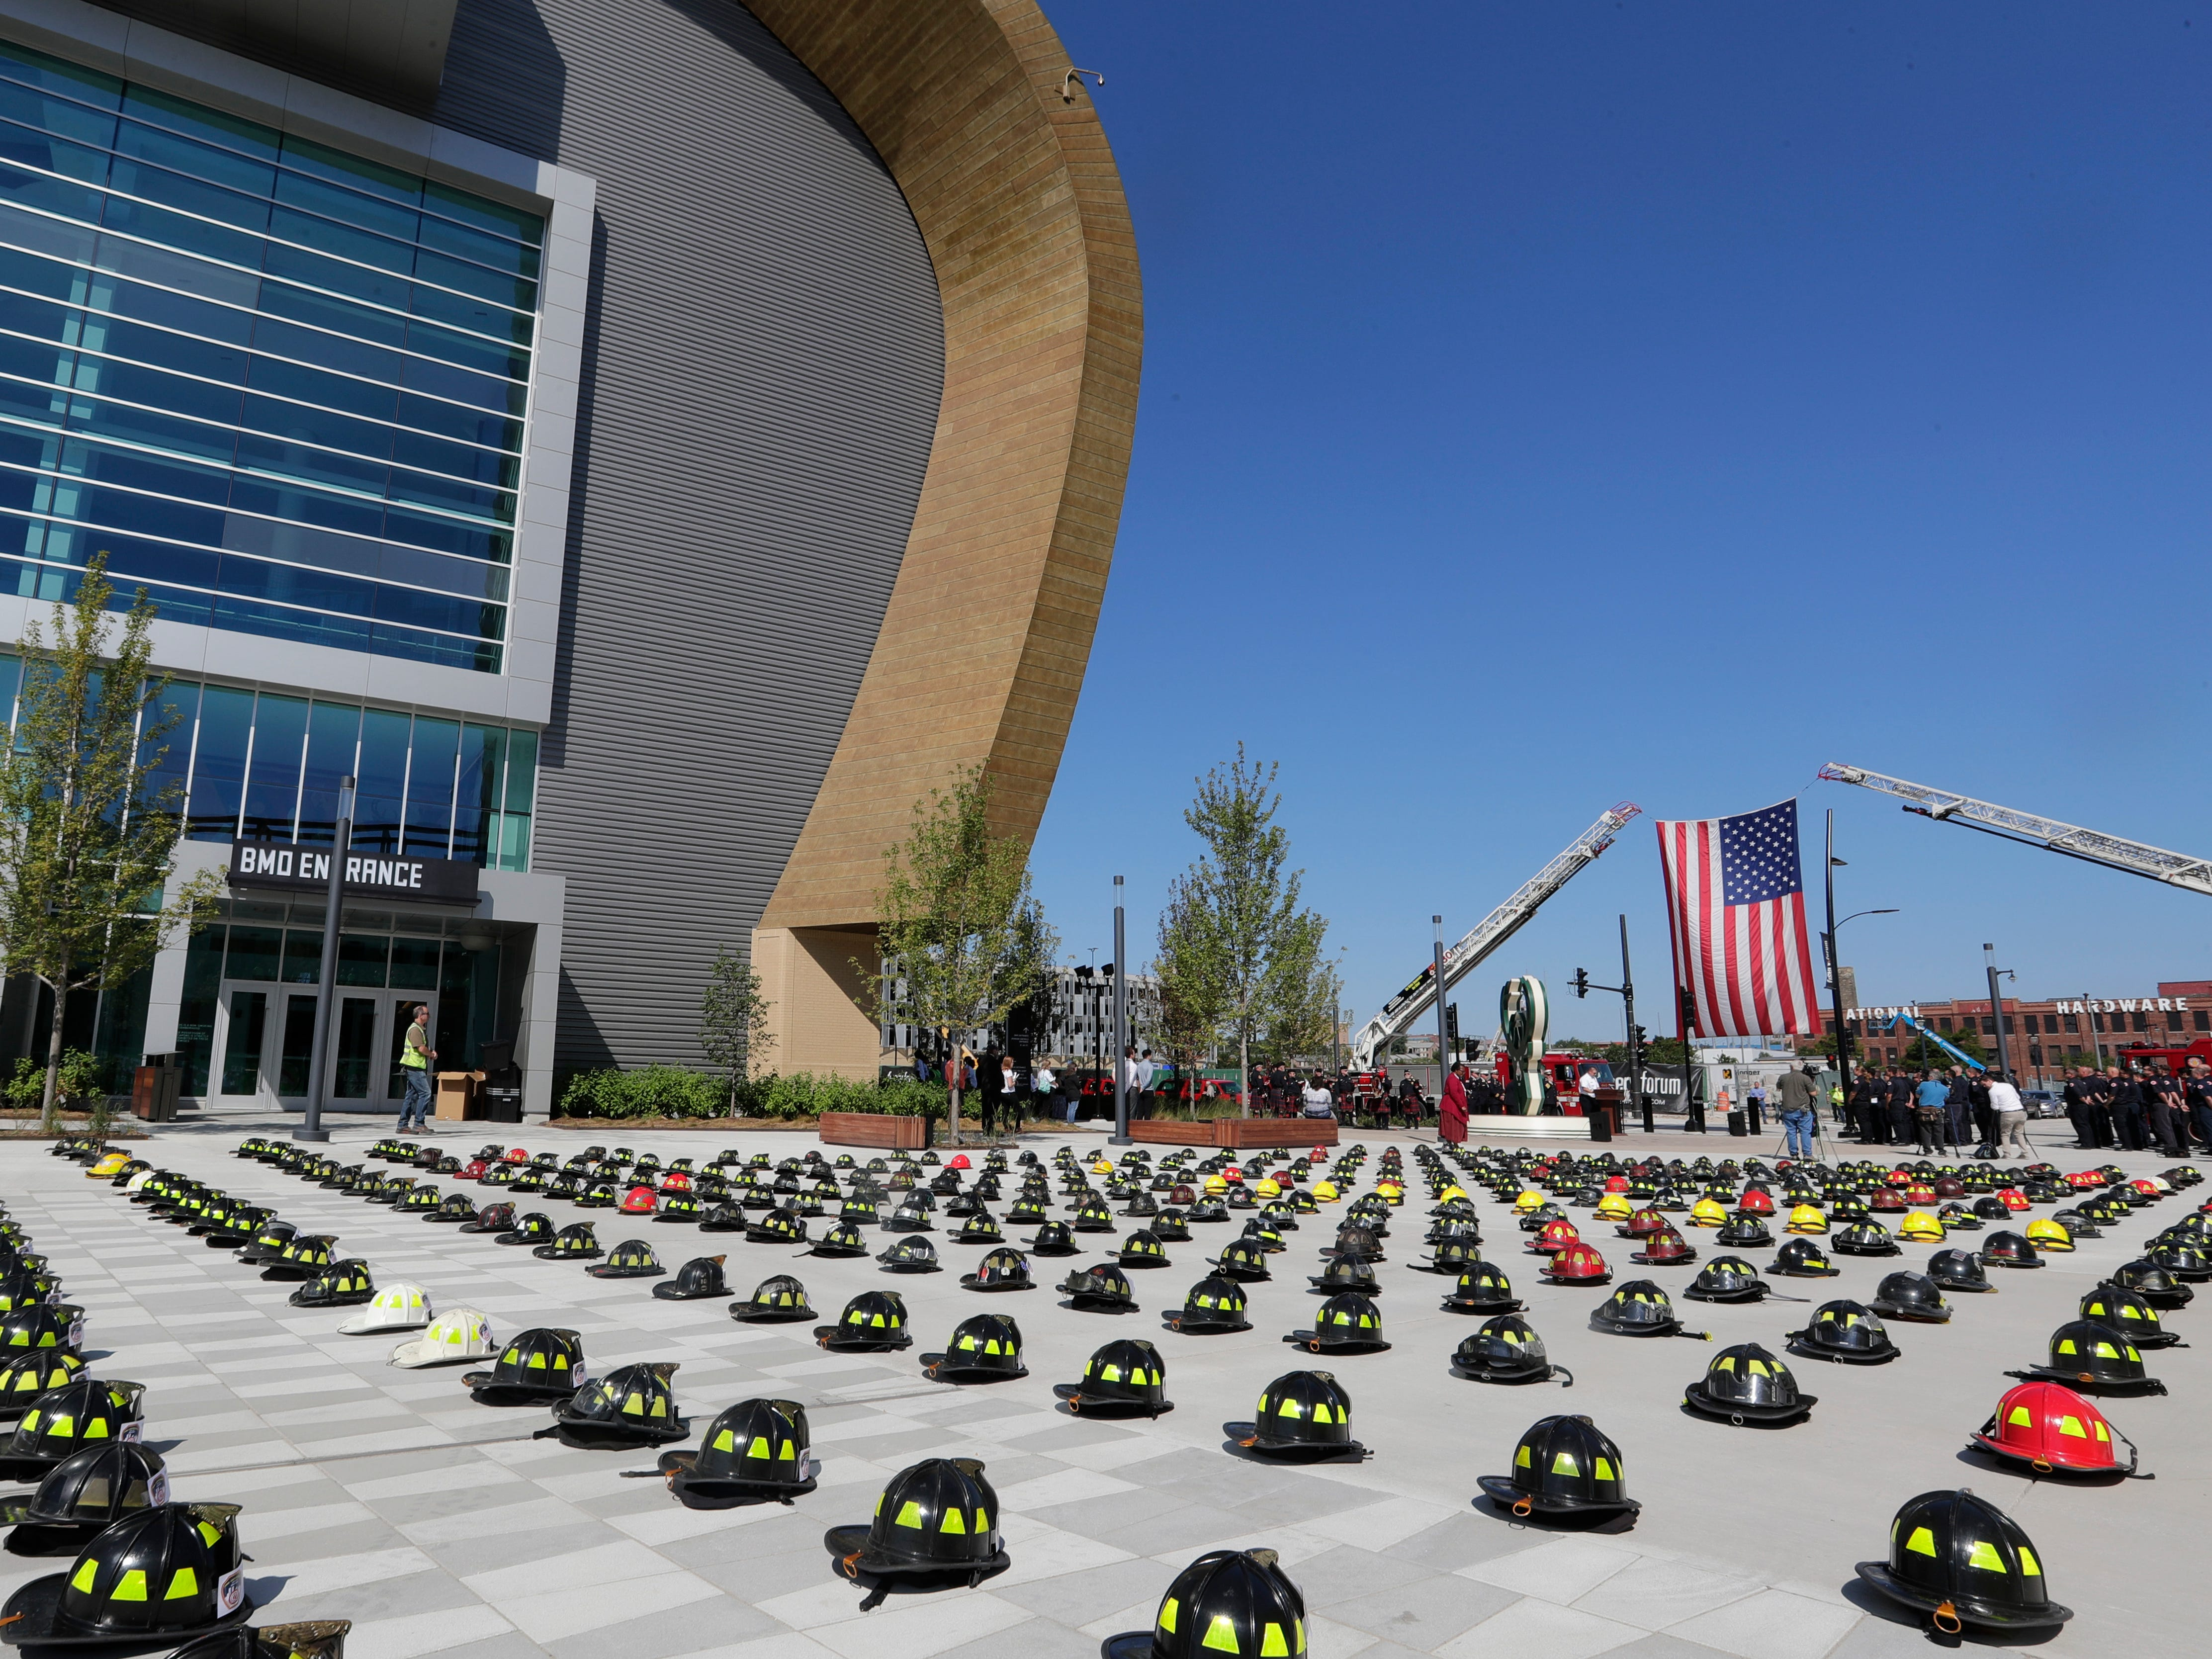 The Milwaukee Fire Department pays tribute to the losses suffered during the terror attacks on Sept. 11, 2001, during a ceremony Tuesday at Fiserv Forum commemorating the 17th anniversary of the attacks. Two fire department ladder trucks display the American flag and 343 helmets representing firefighters who perished in the attacks are also displayed. Uniformed personnel read the names  of those firefighters who perished.